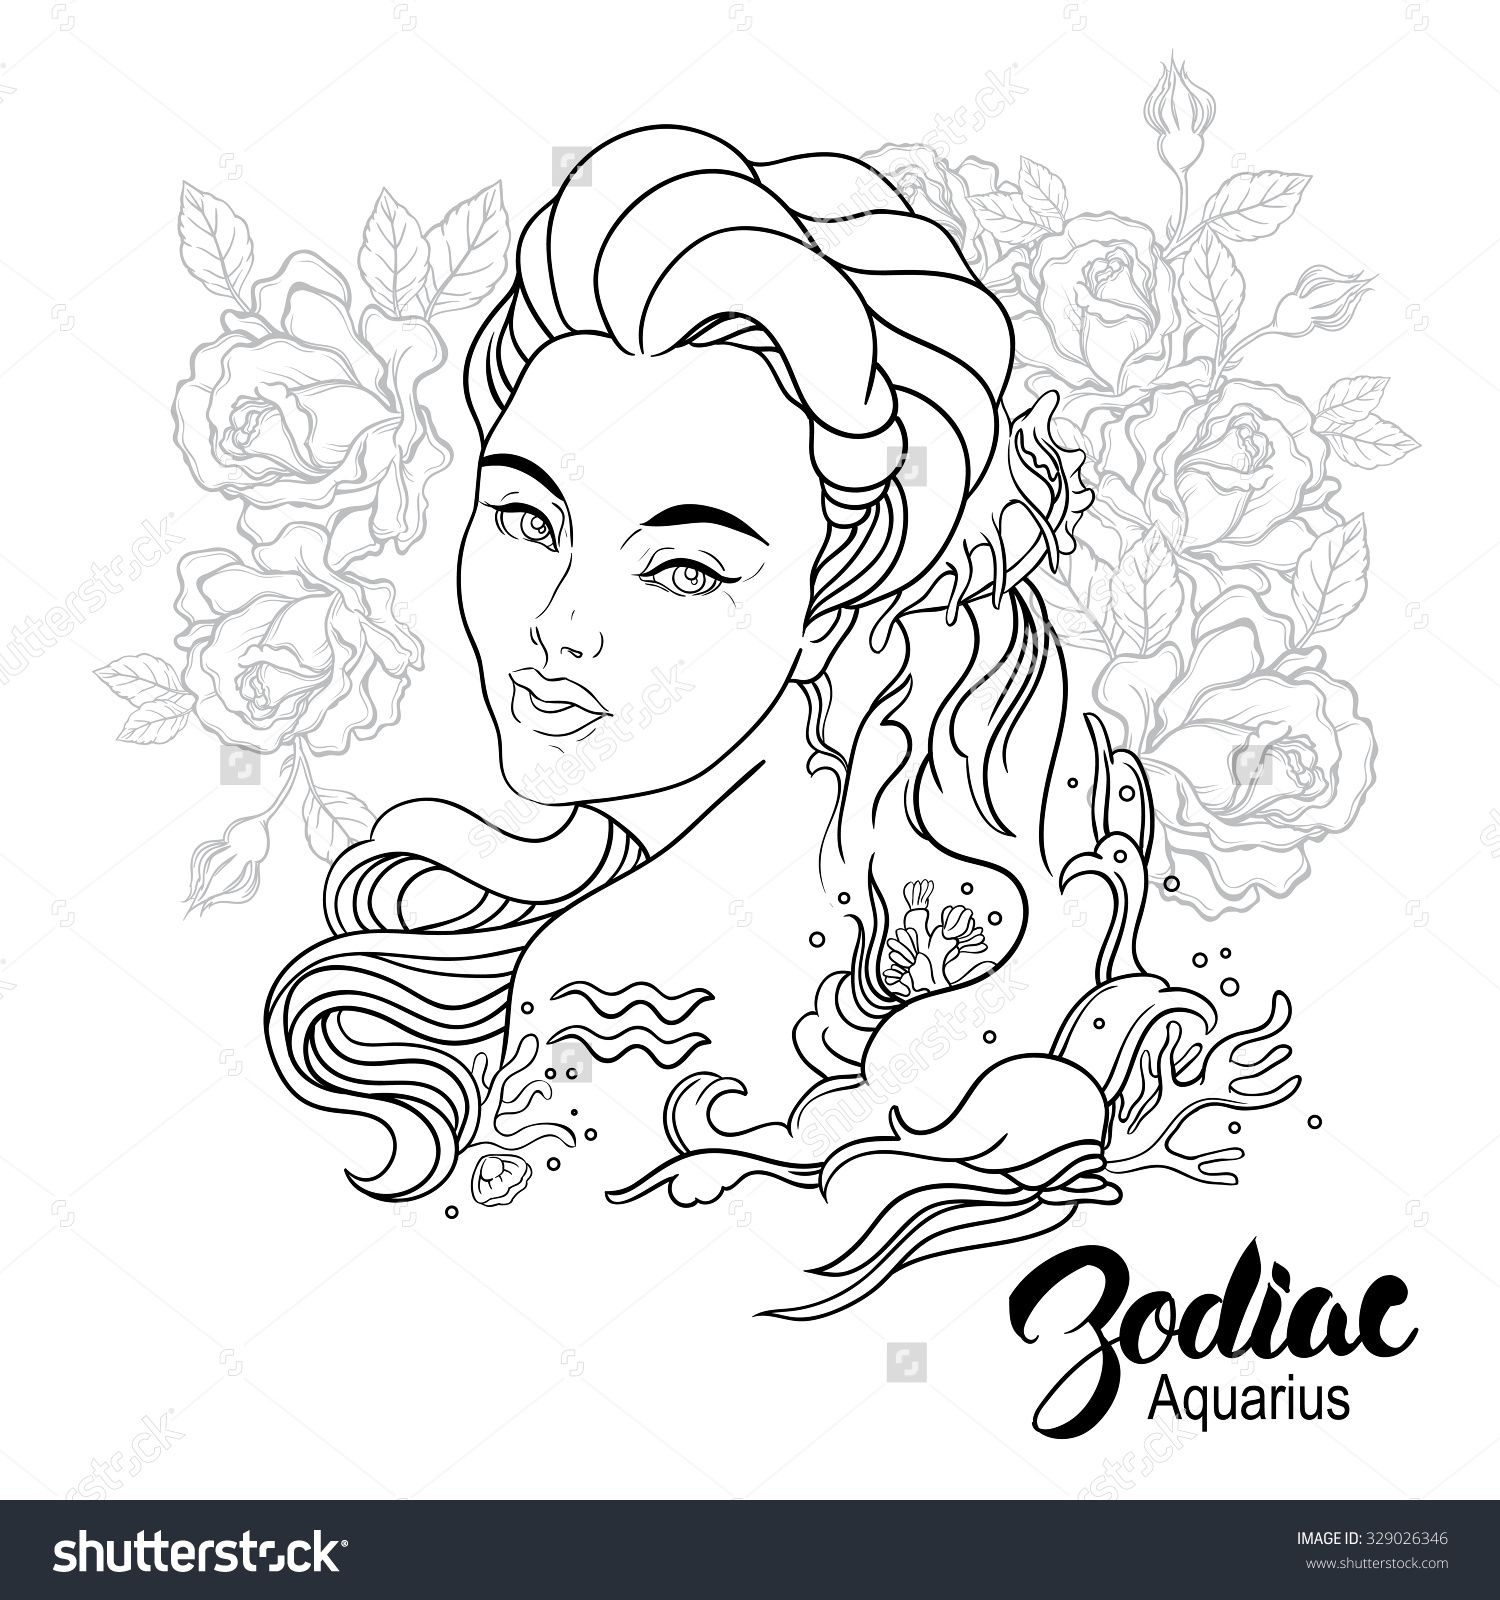 Stock Photo Zodiac Illustration Of Aquarius As Girl With Flowers